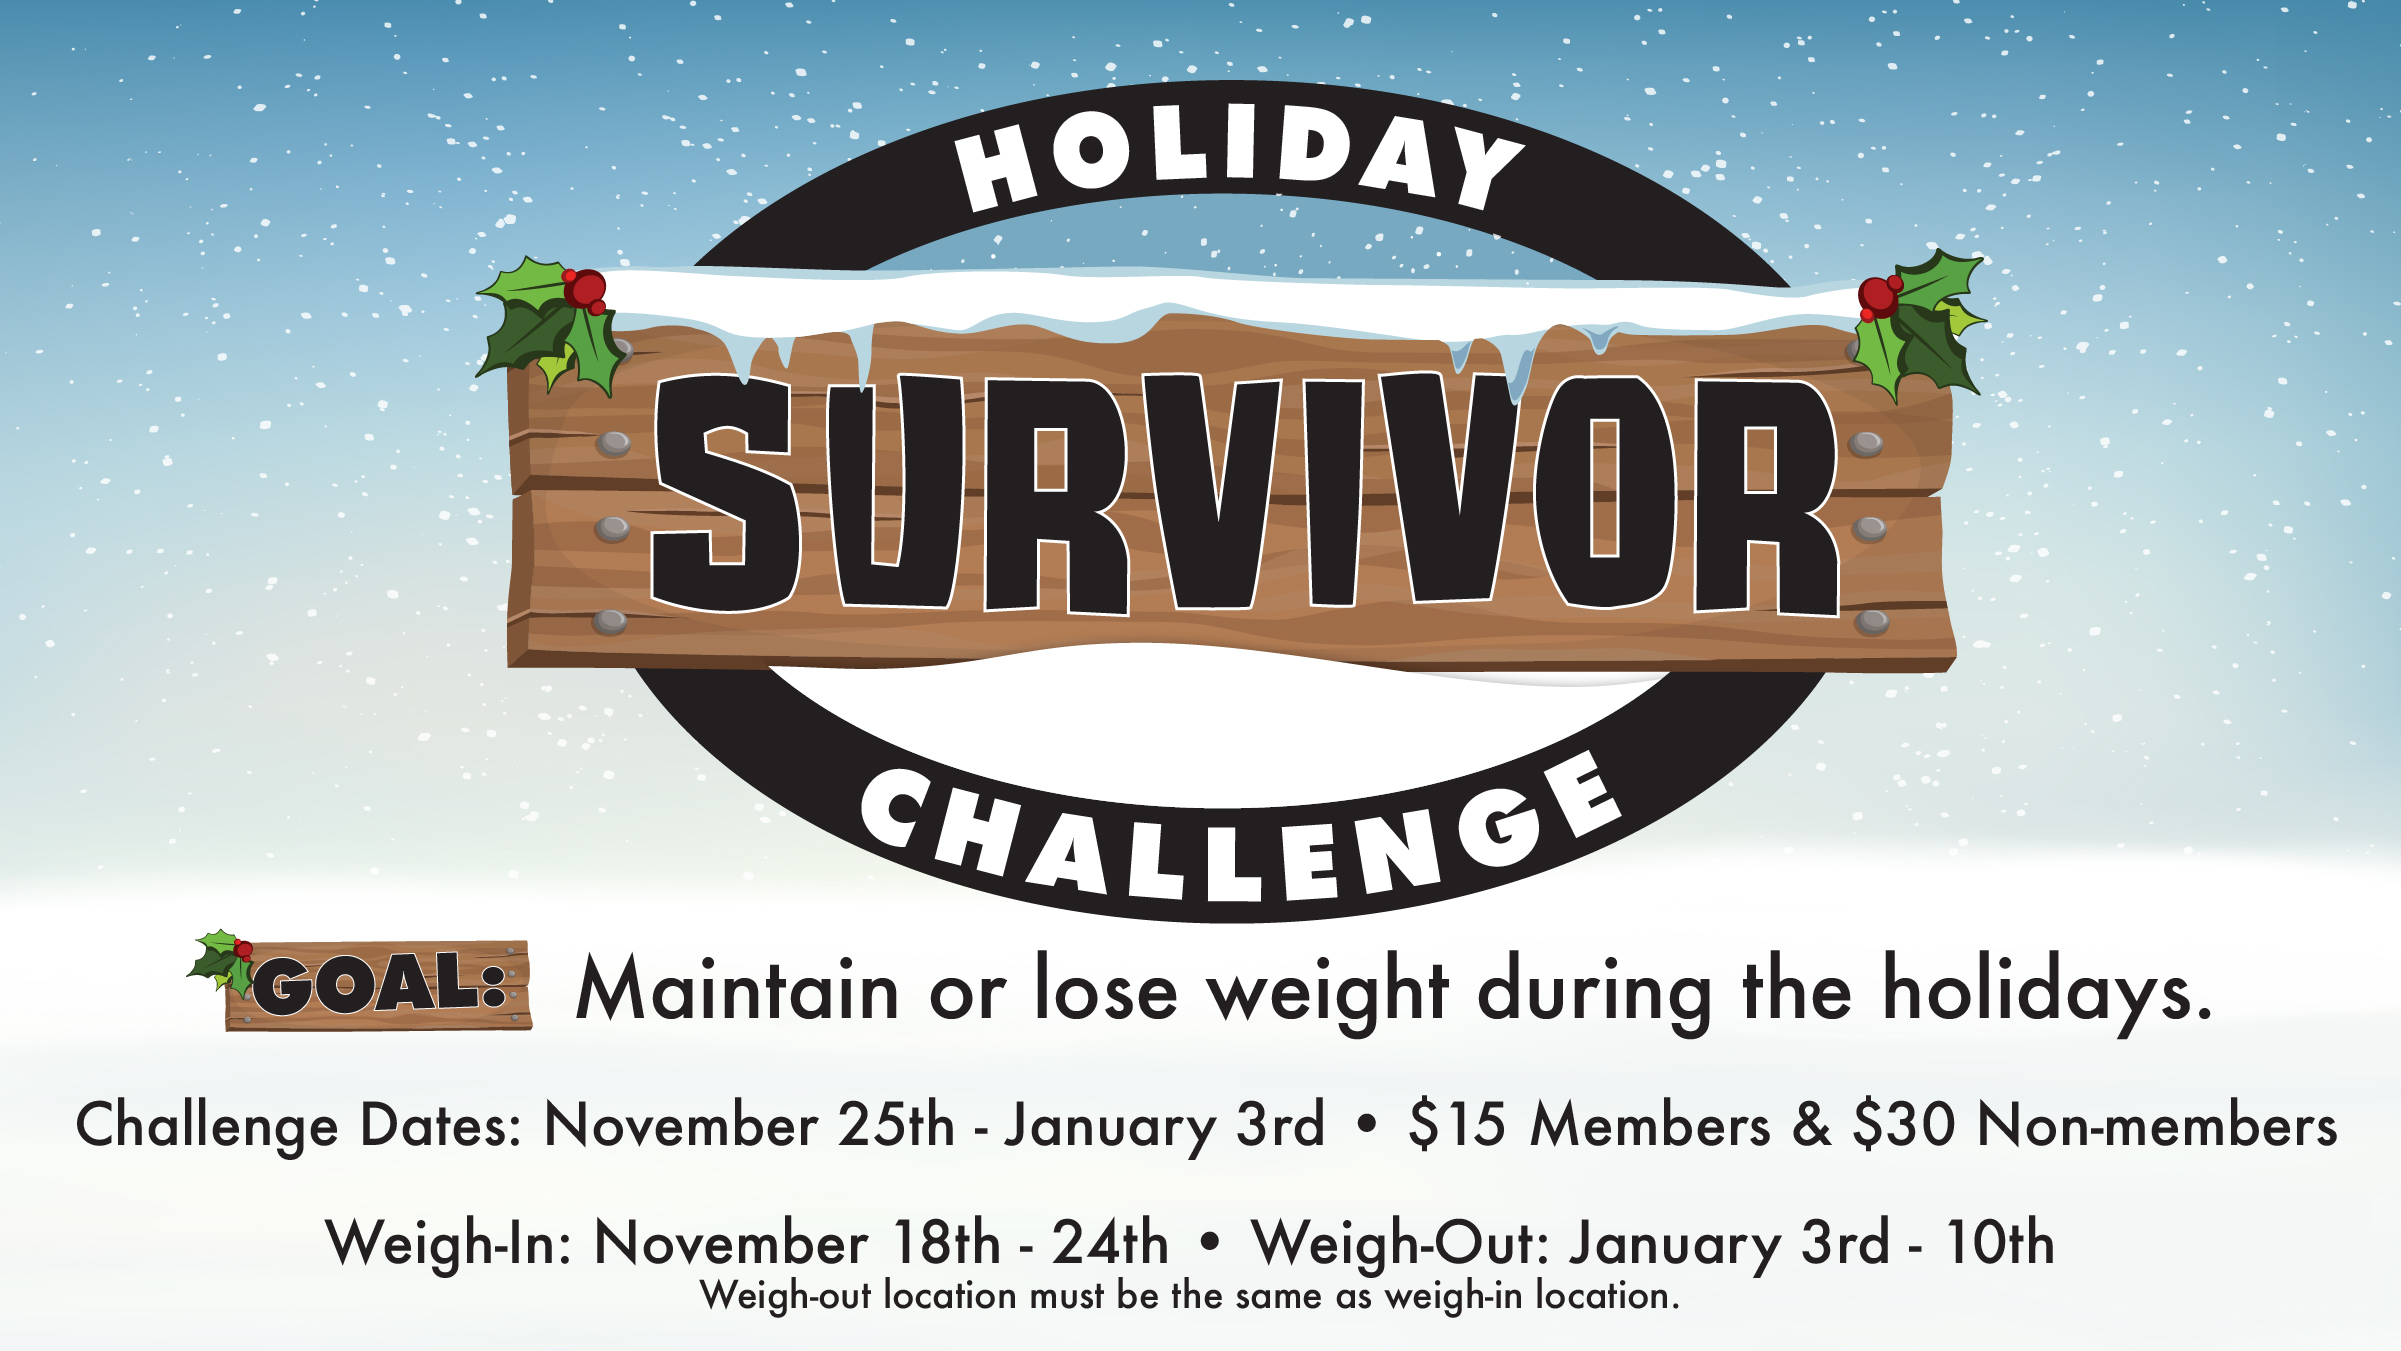 Holiday Survivor